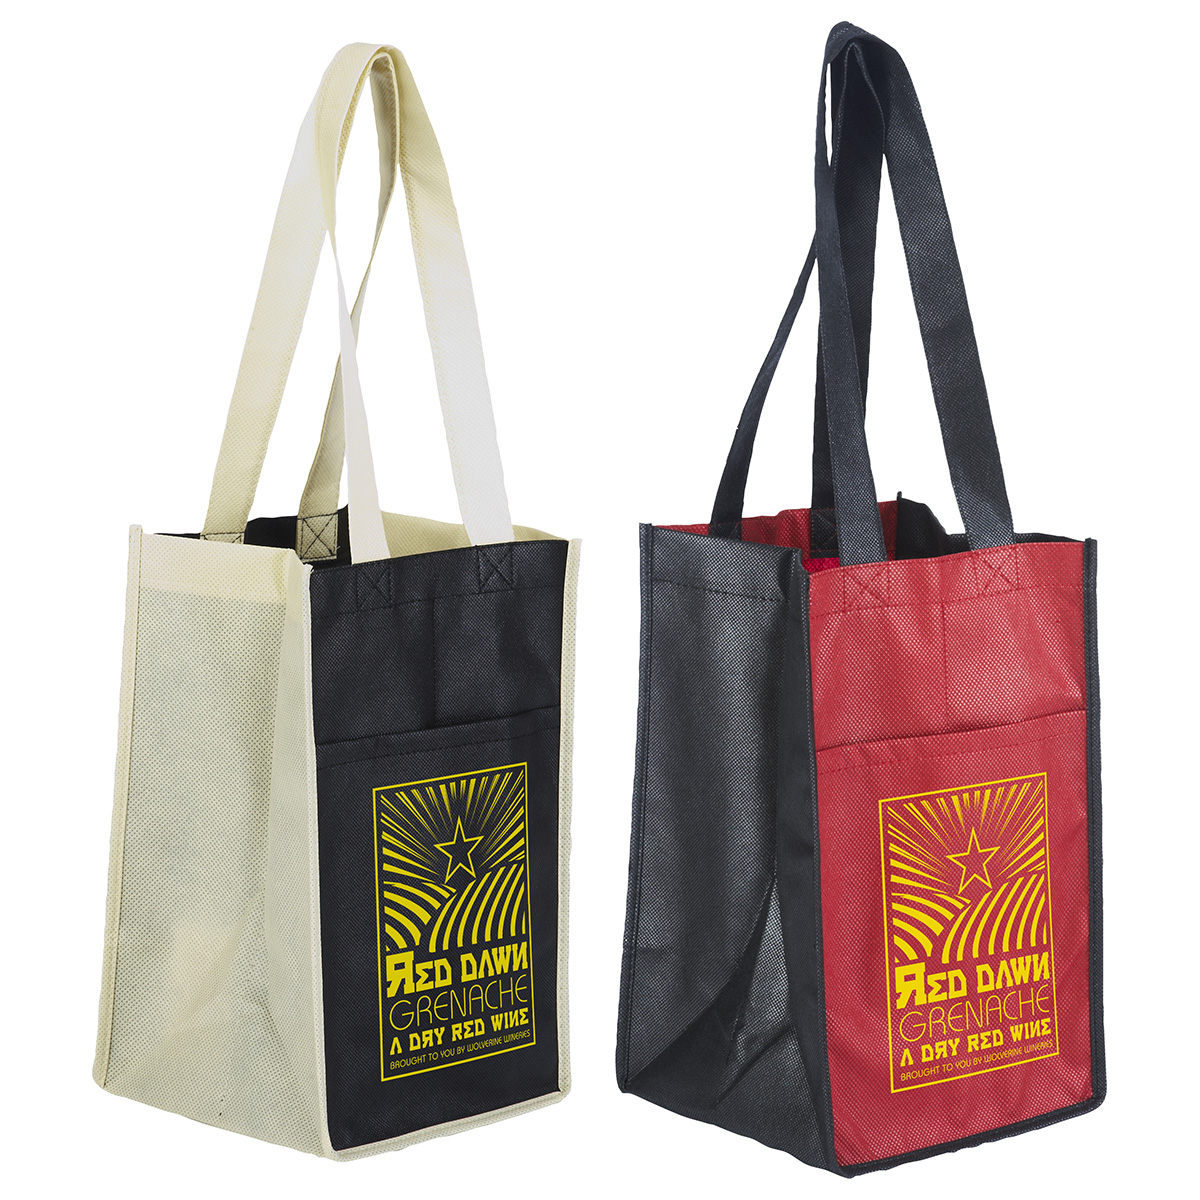 Sun Shower 4-Bottle Wine Bag, WBA-BB10 - 1 Colour Imprint